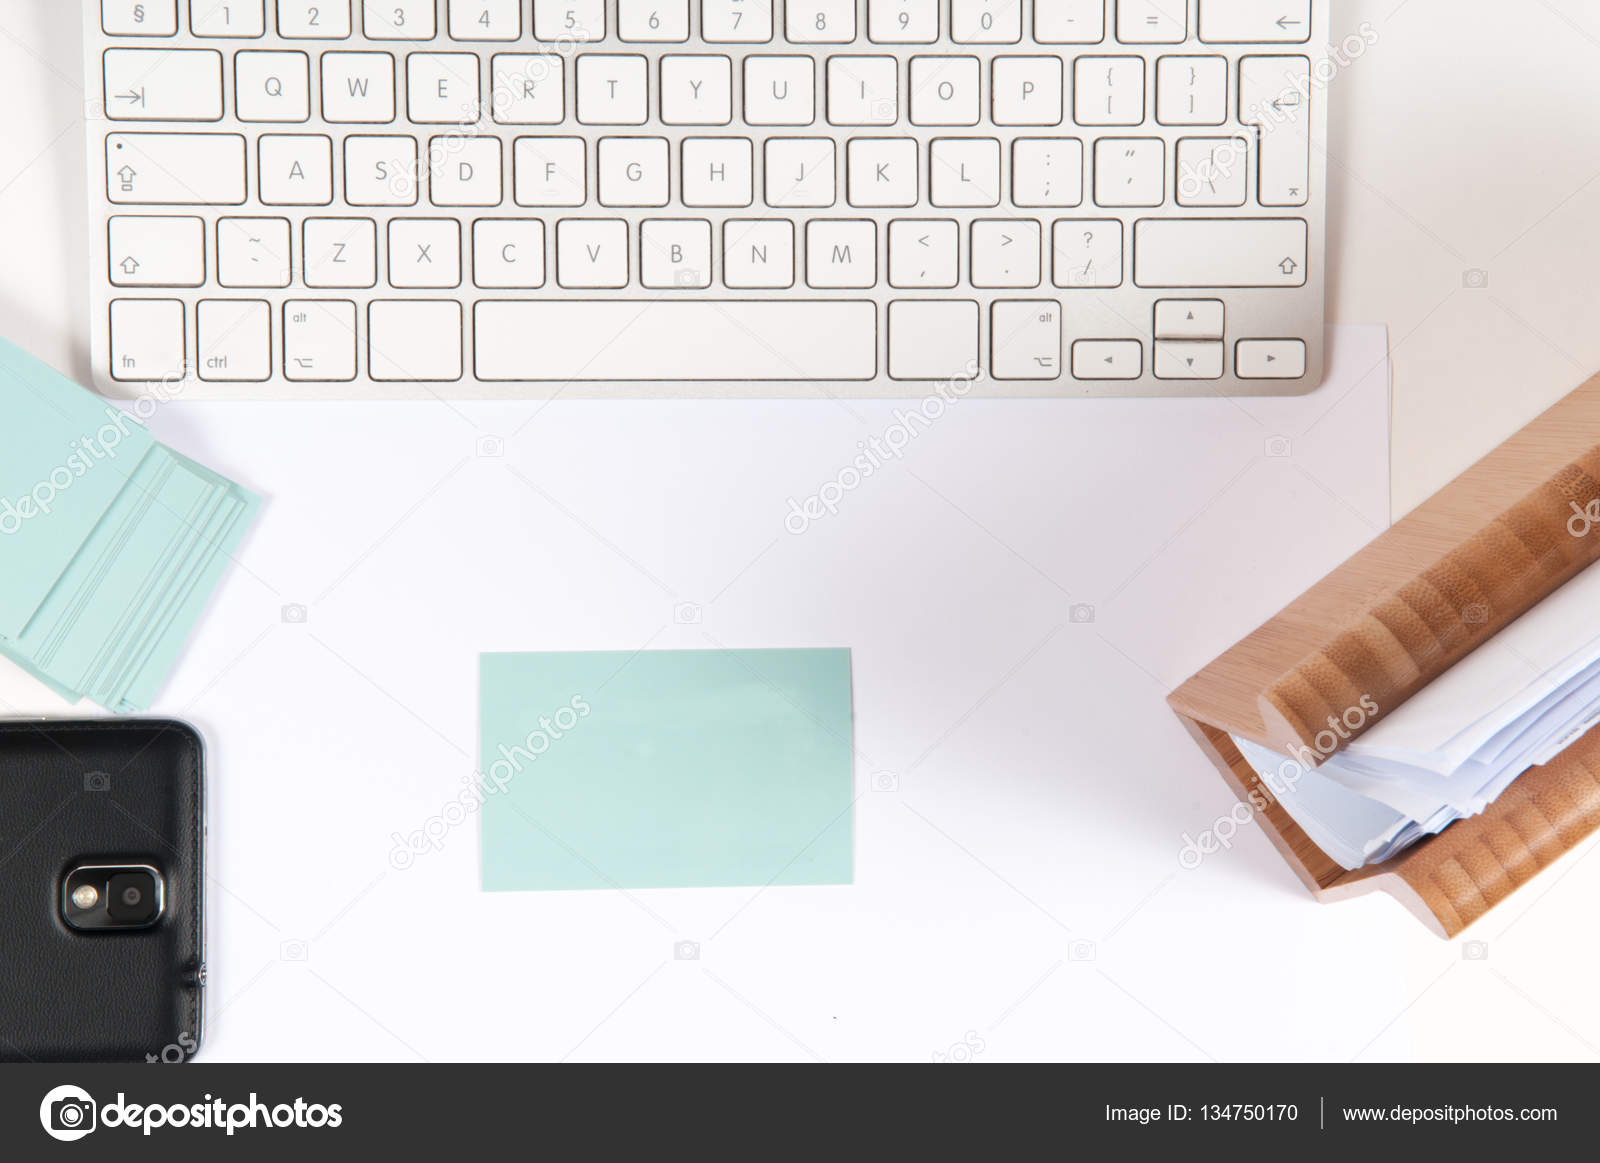 Home Office Background Images 2